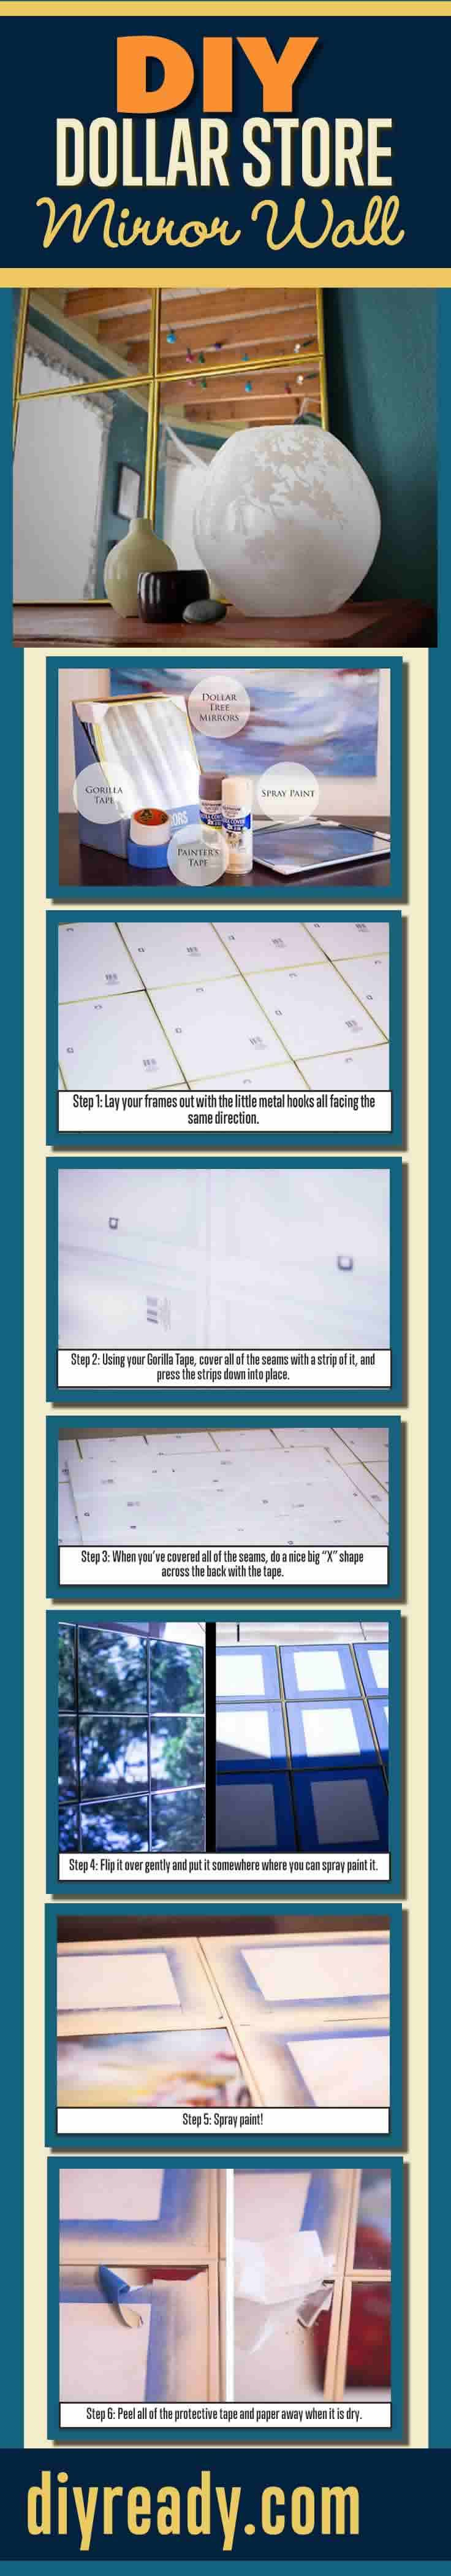 DIY Dollar Store Mirror Wall Tutorial - Easy DIY Projects Ideas for Home Decor on a Budget http://diyready.com/dollar-store-crafts-diy-mirror-wall/